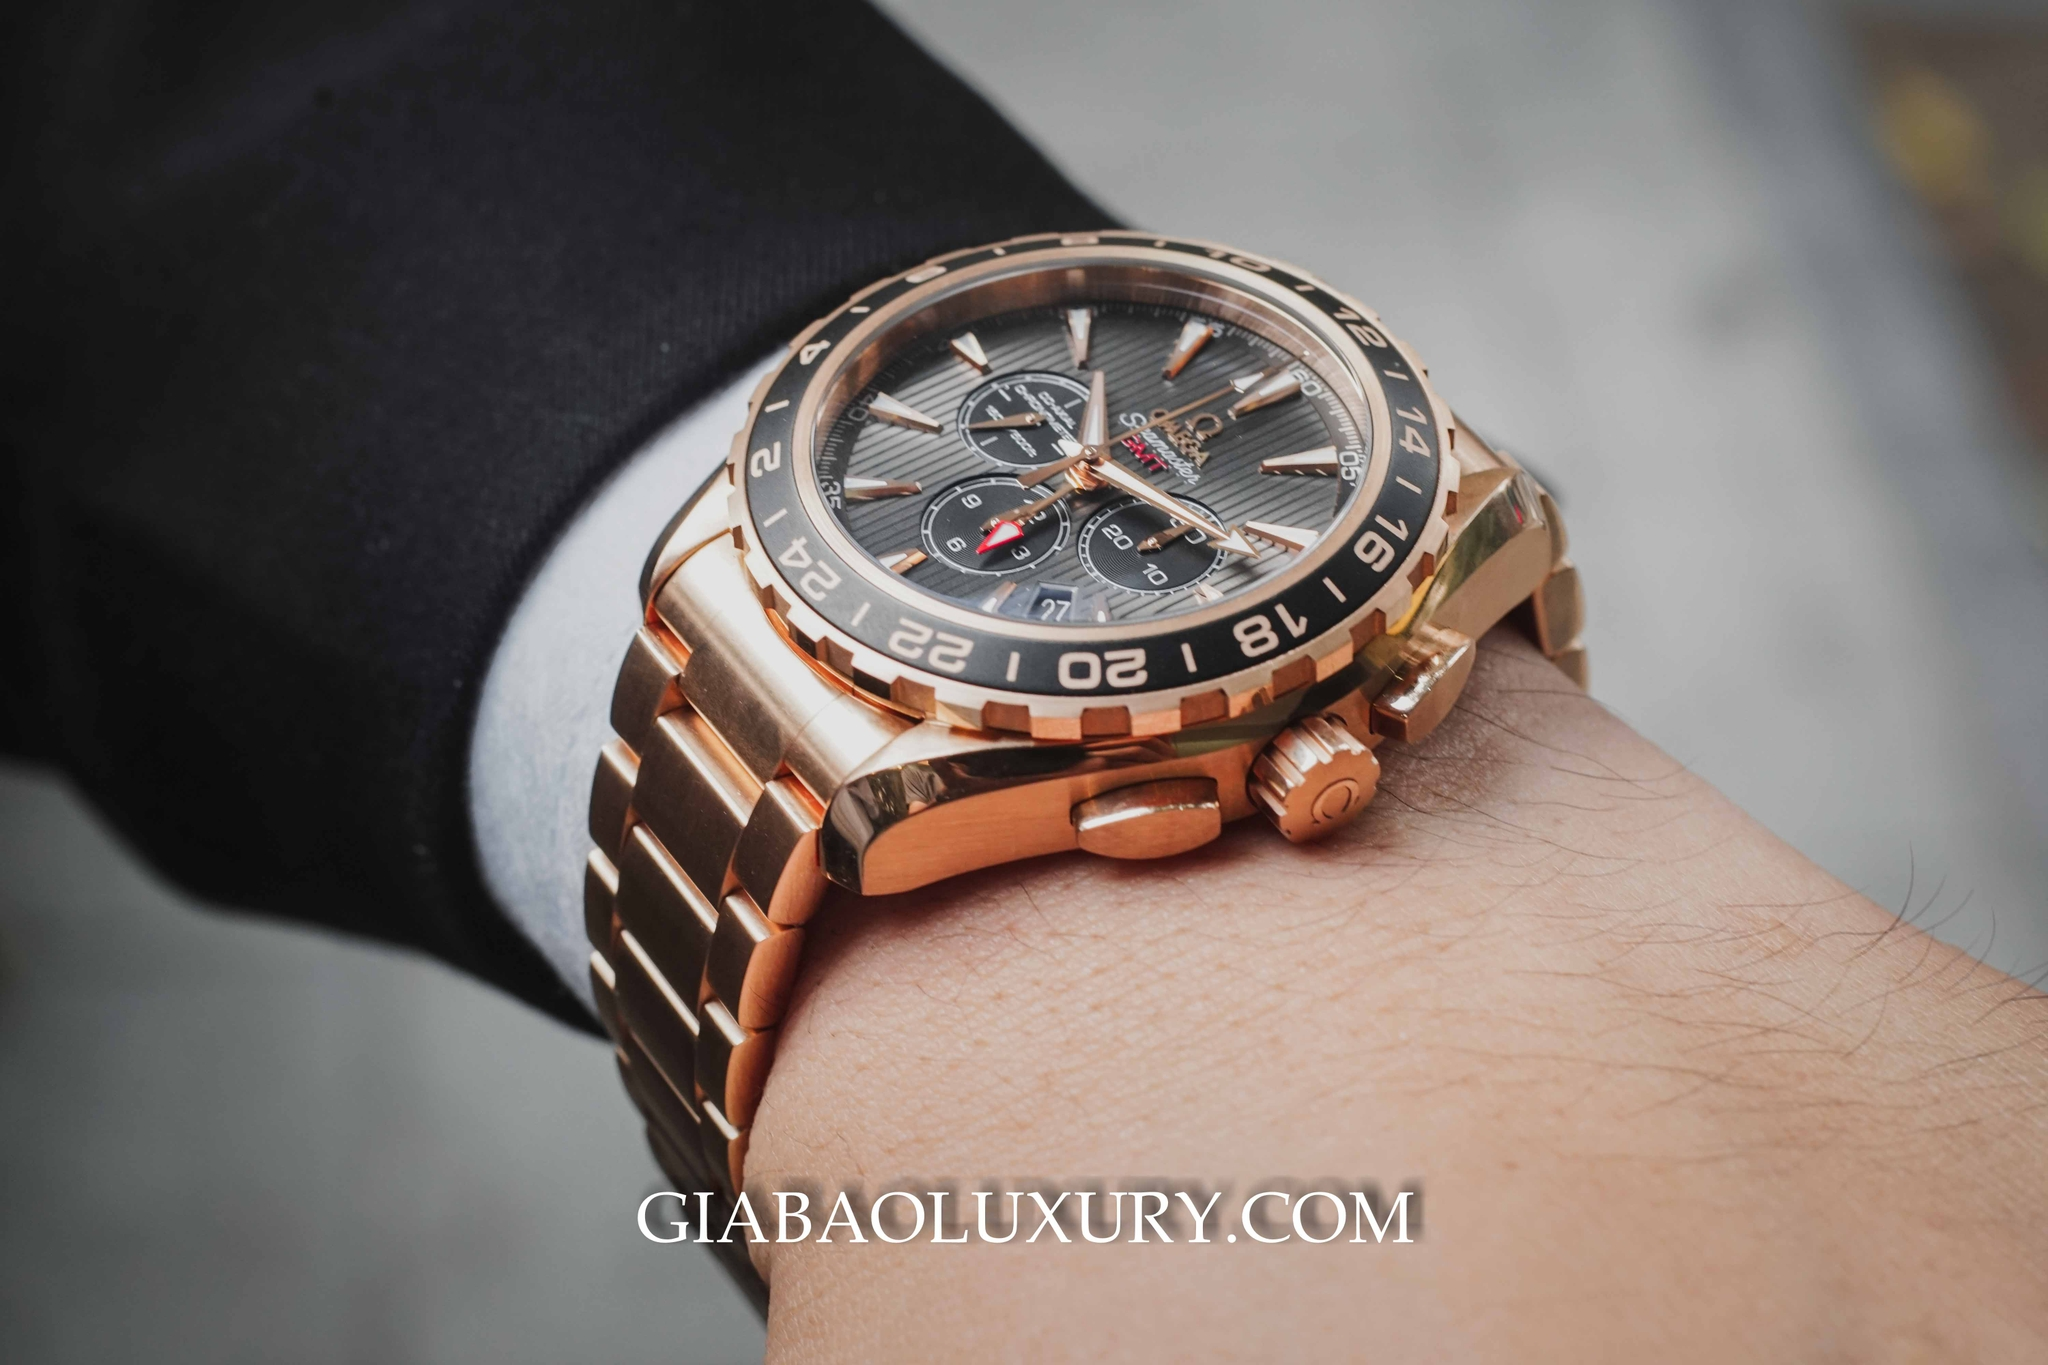 Review đồng hồ Omega Aqua Terra 150m Co-Axial GMT Chronograph